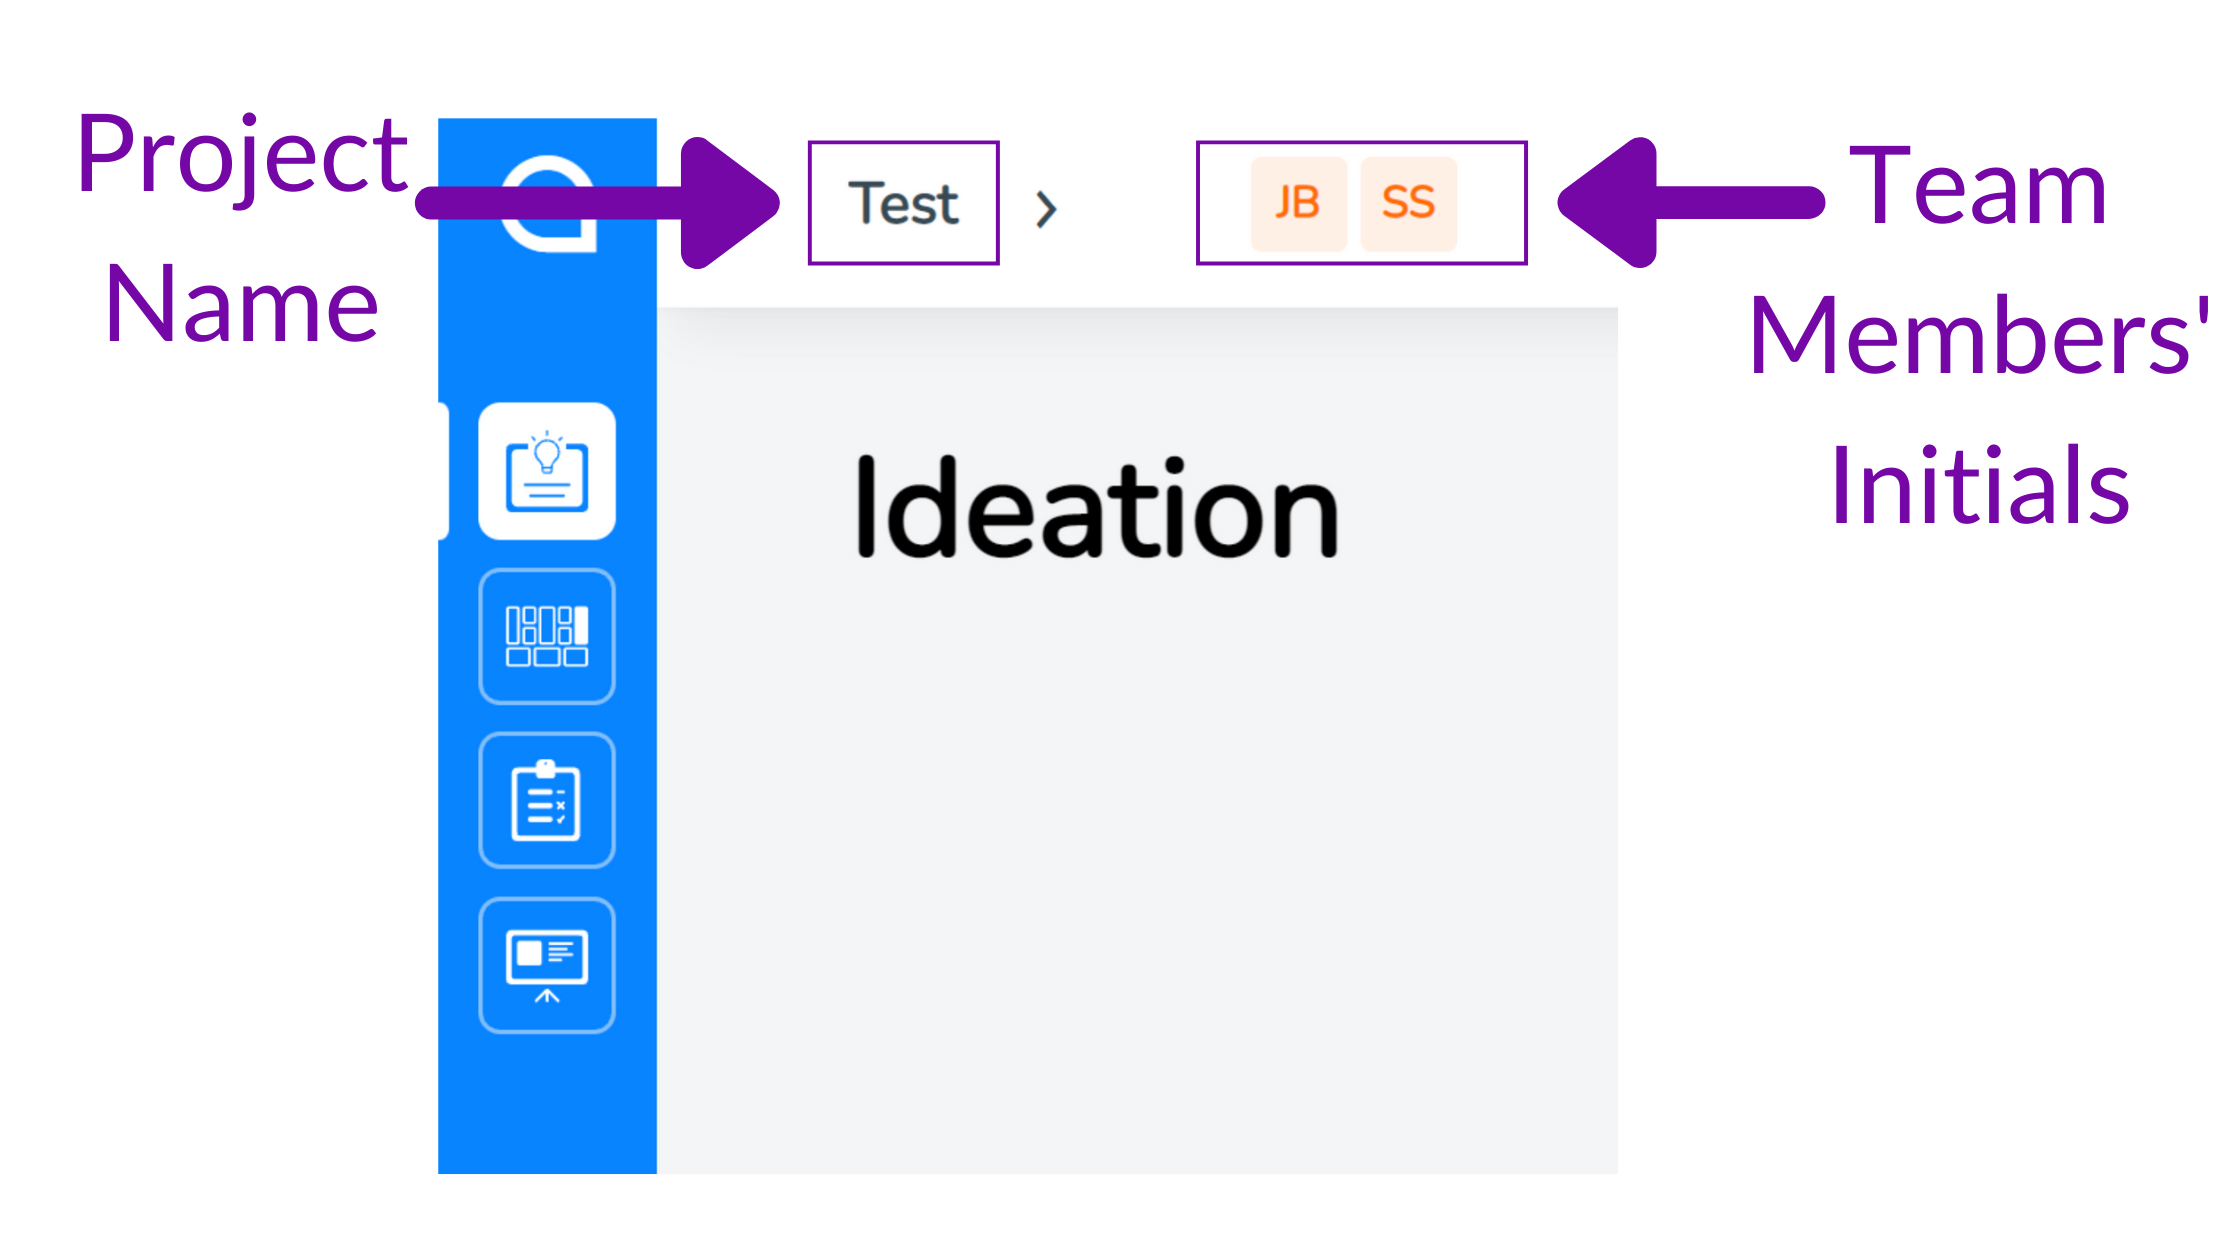 Easily see your team members who are collaborating with you on your startup project by seeing their initials in the top menu of SimVenture Validate.